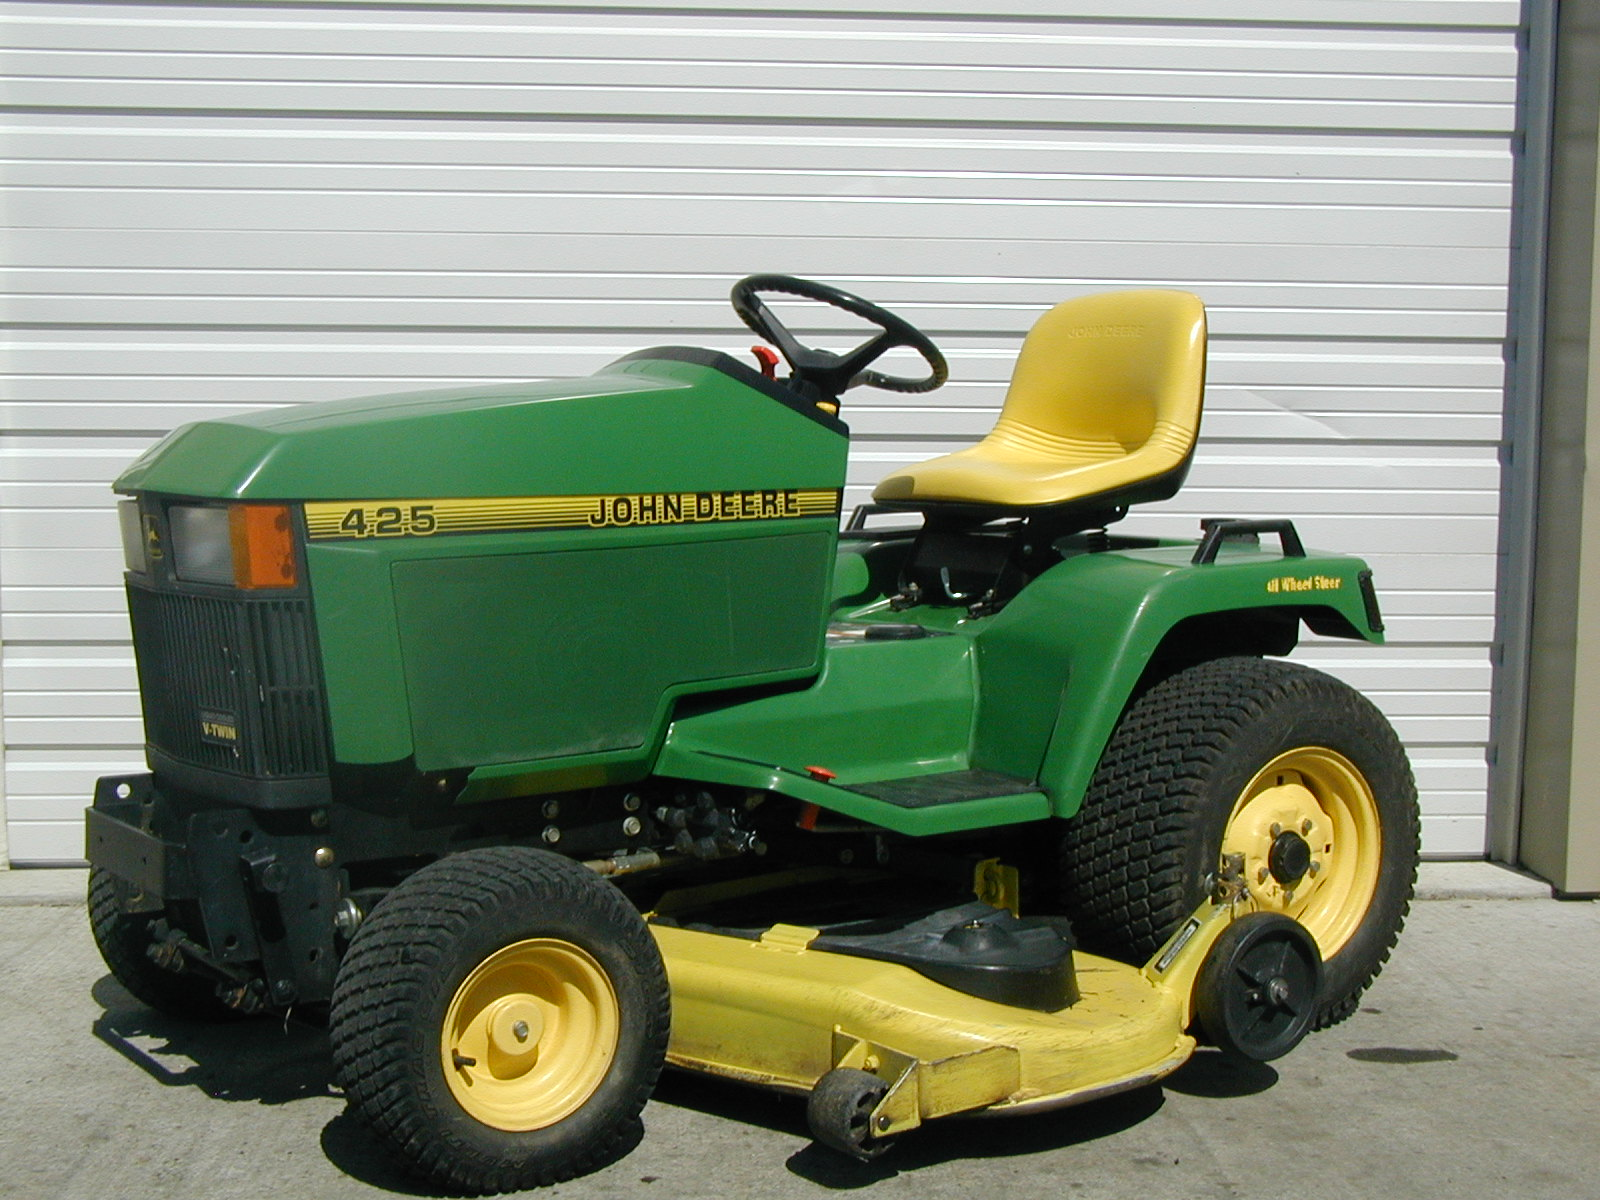 John Deere 425 Replacement Parts : John deere weed eater part fuel free engine image